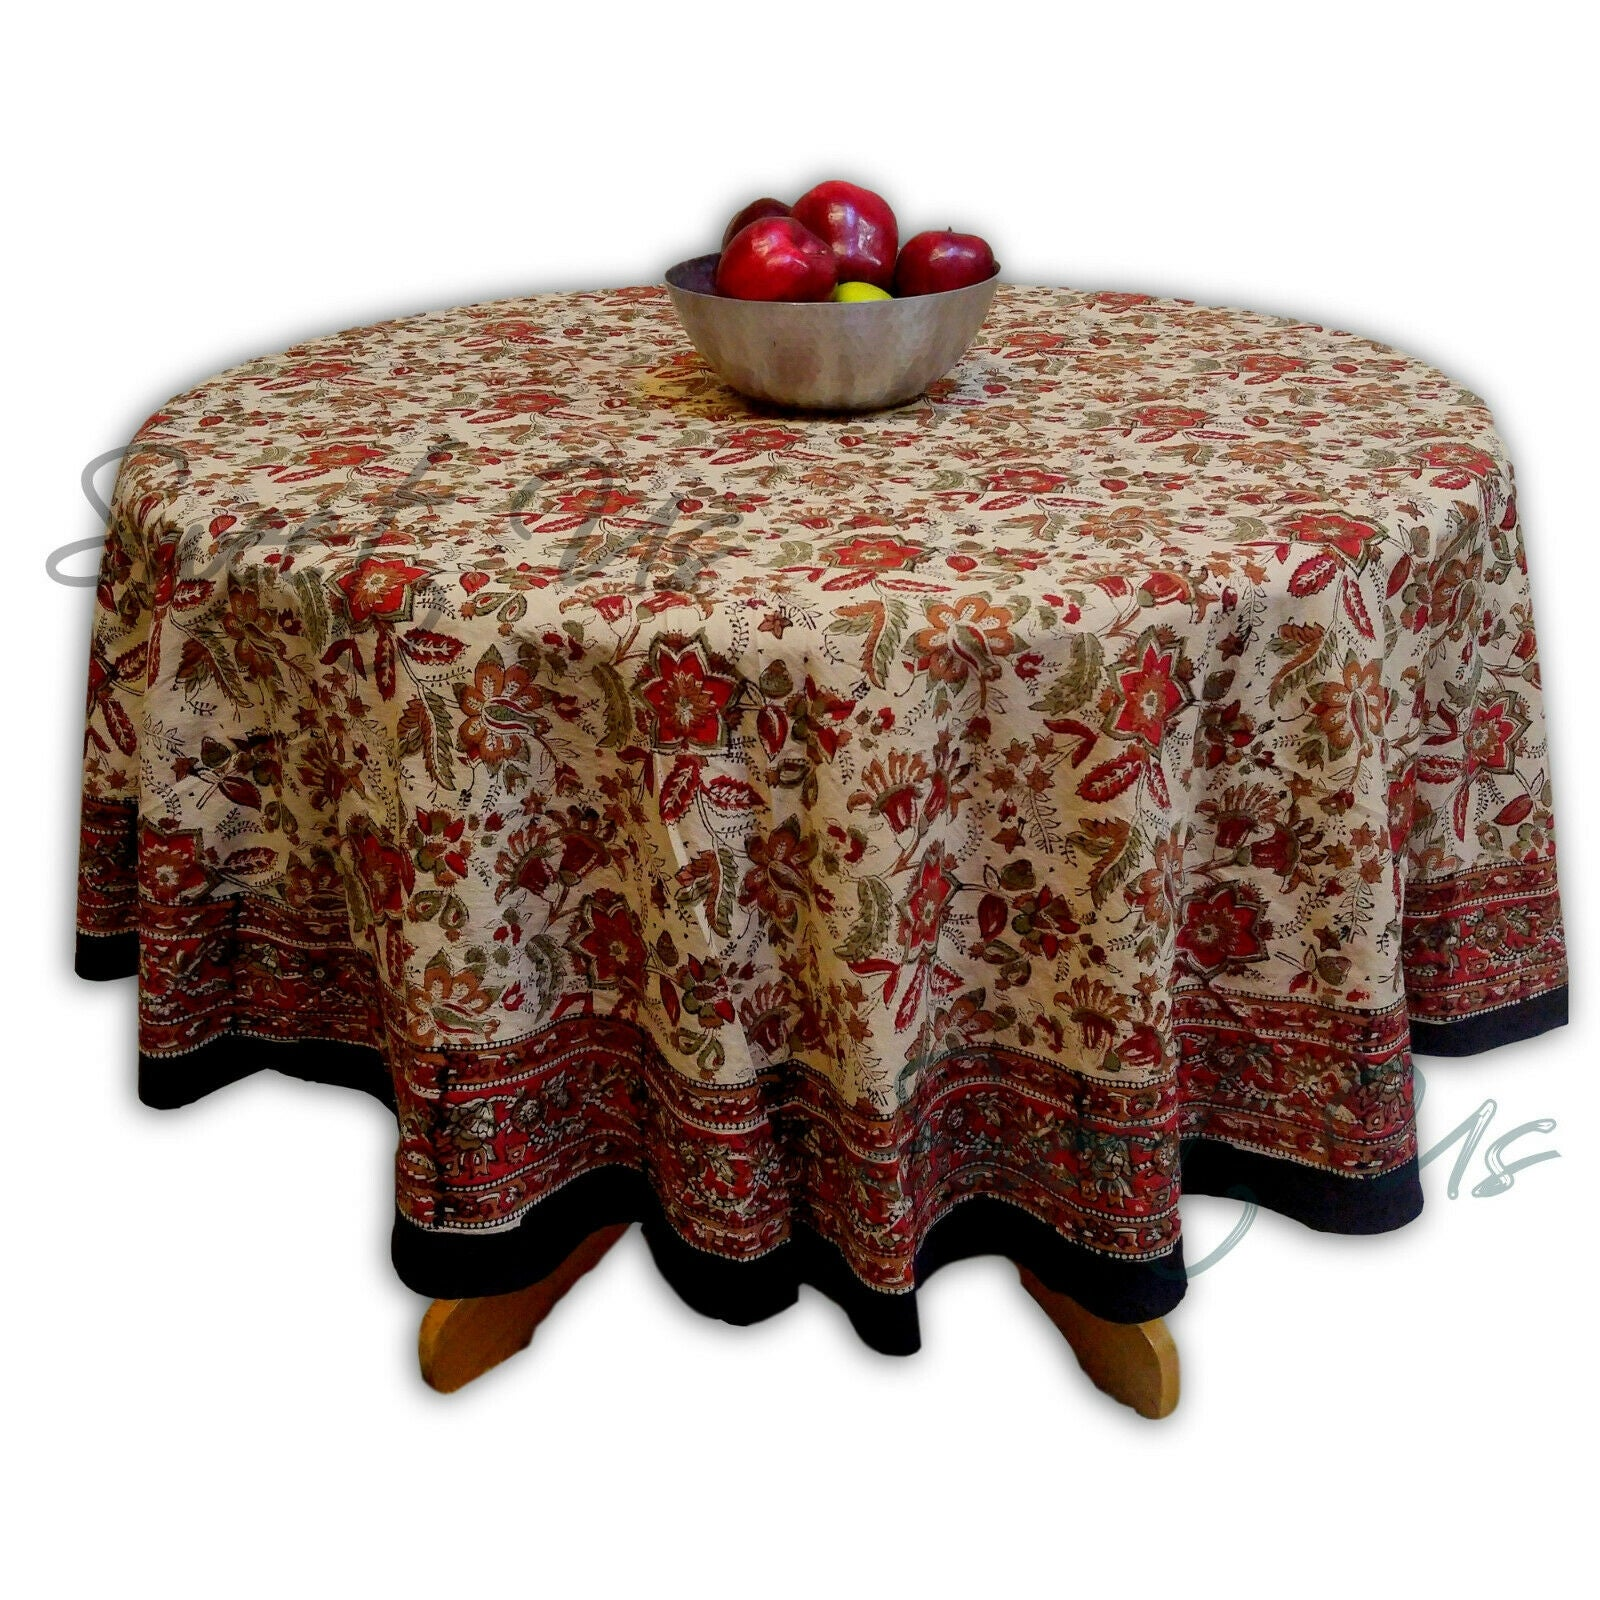 Farmhouse Table Linens Decor Shop Our Best Kitchen Dining Deals Online At Overstock